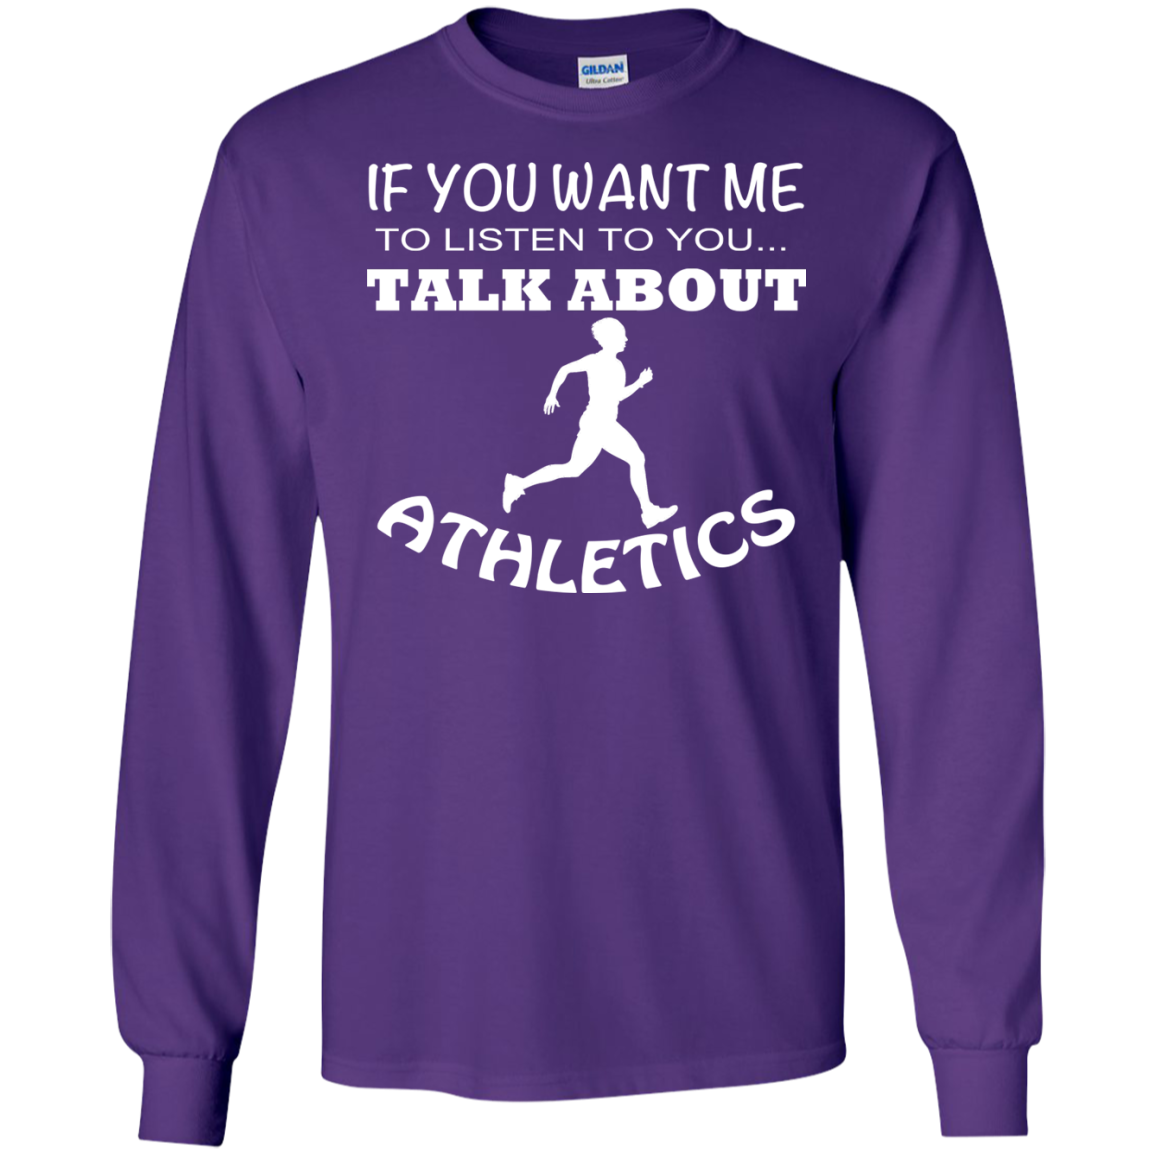 If You Want Me To Listen To You Talk About Athletics Long Sleeve Tees